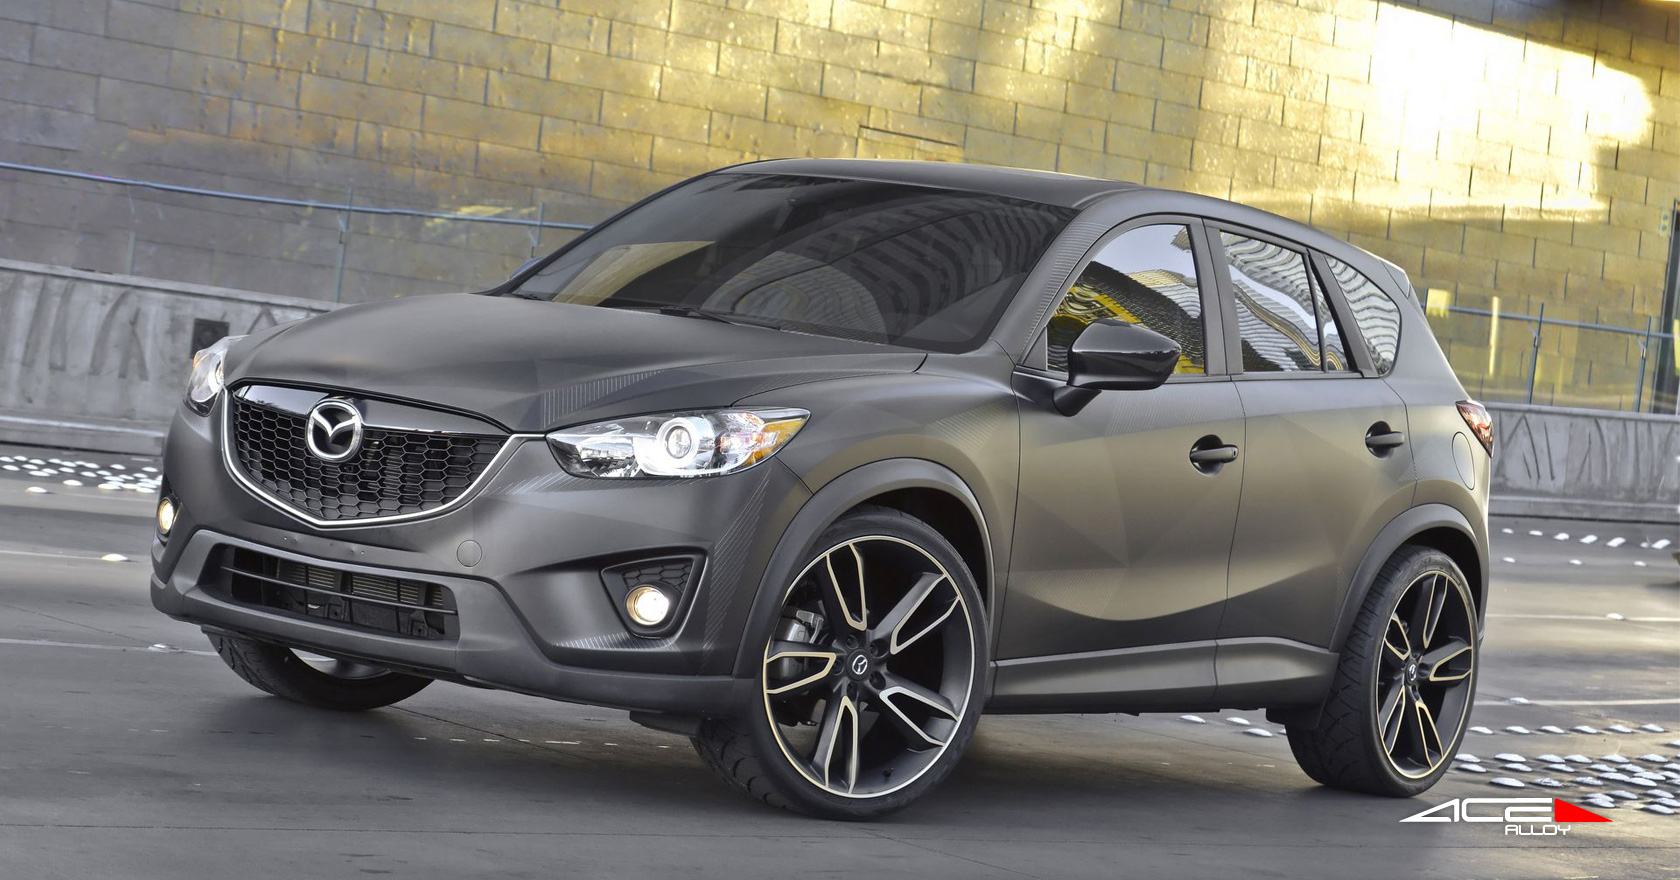 Mazda Cx 5 Urban W 22 22x10 0 Front Rear Matte Black With Machined Face Ace